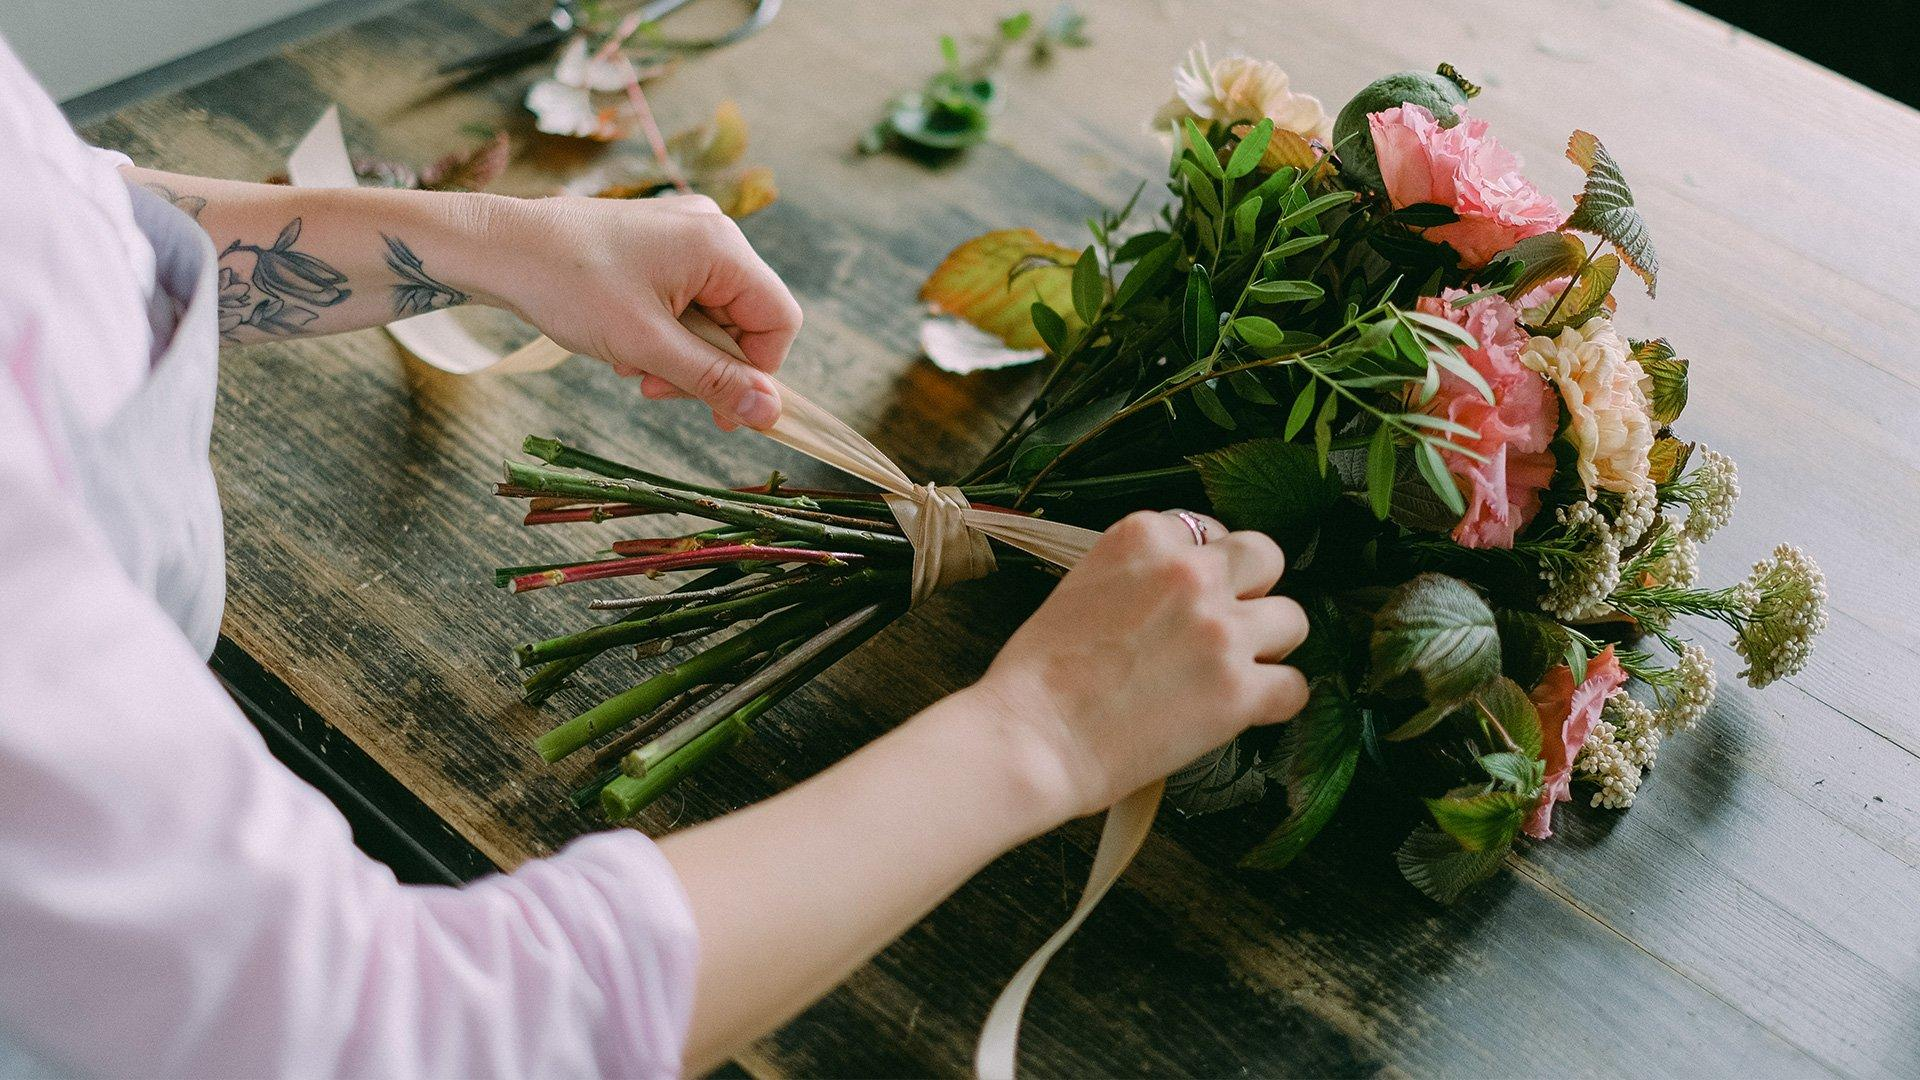 Tieing up your bouquet with twine, ribbon or string